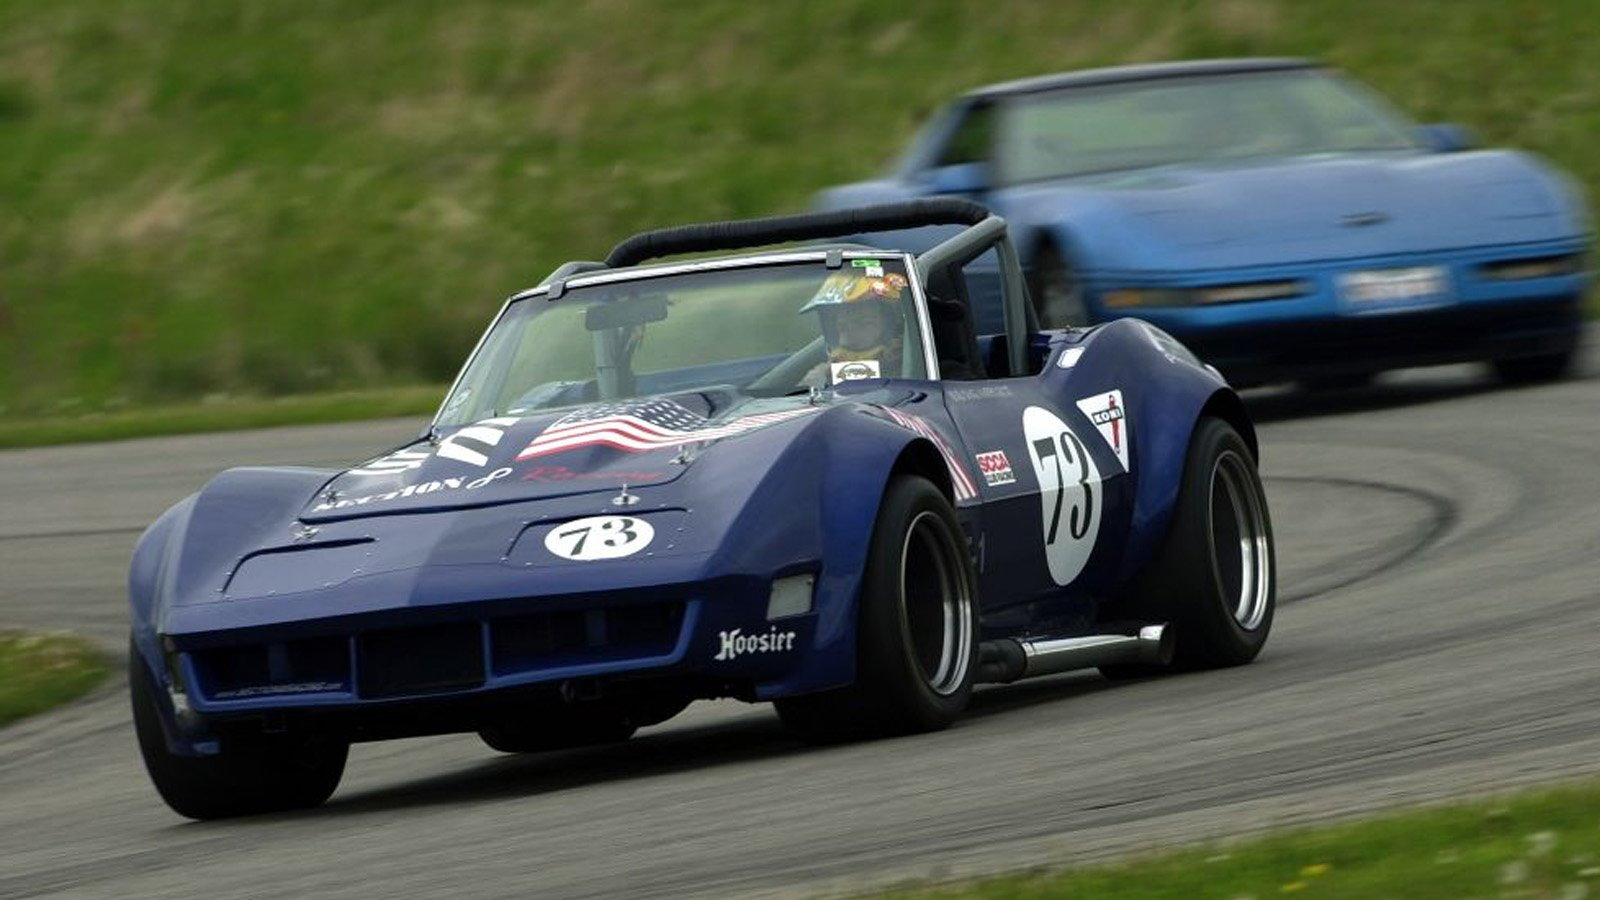 C3 Corvettes Tearing it up on the Track